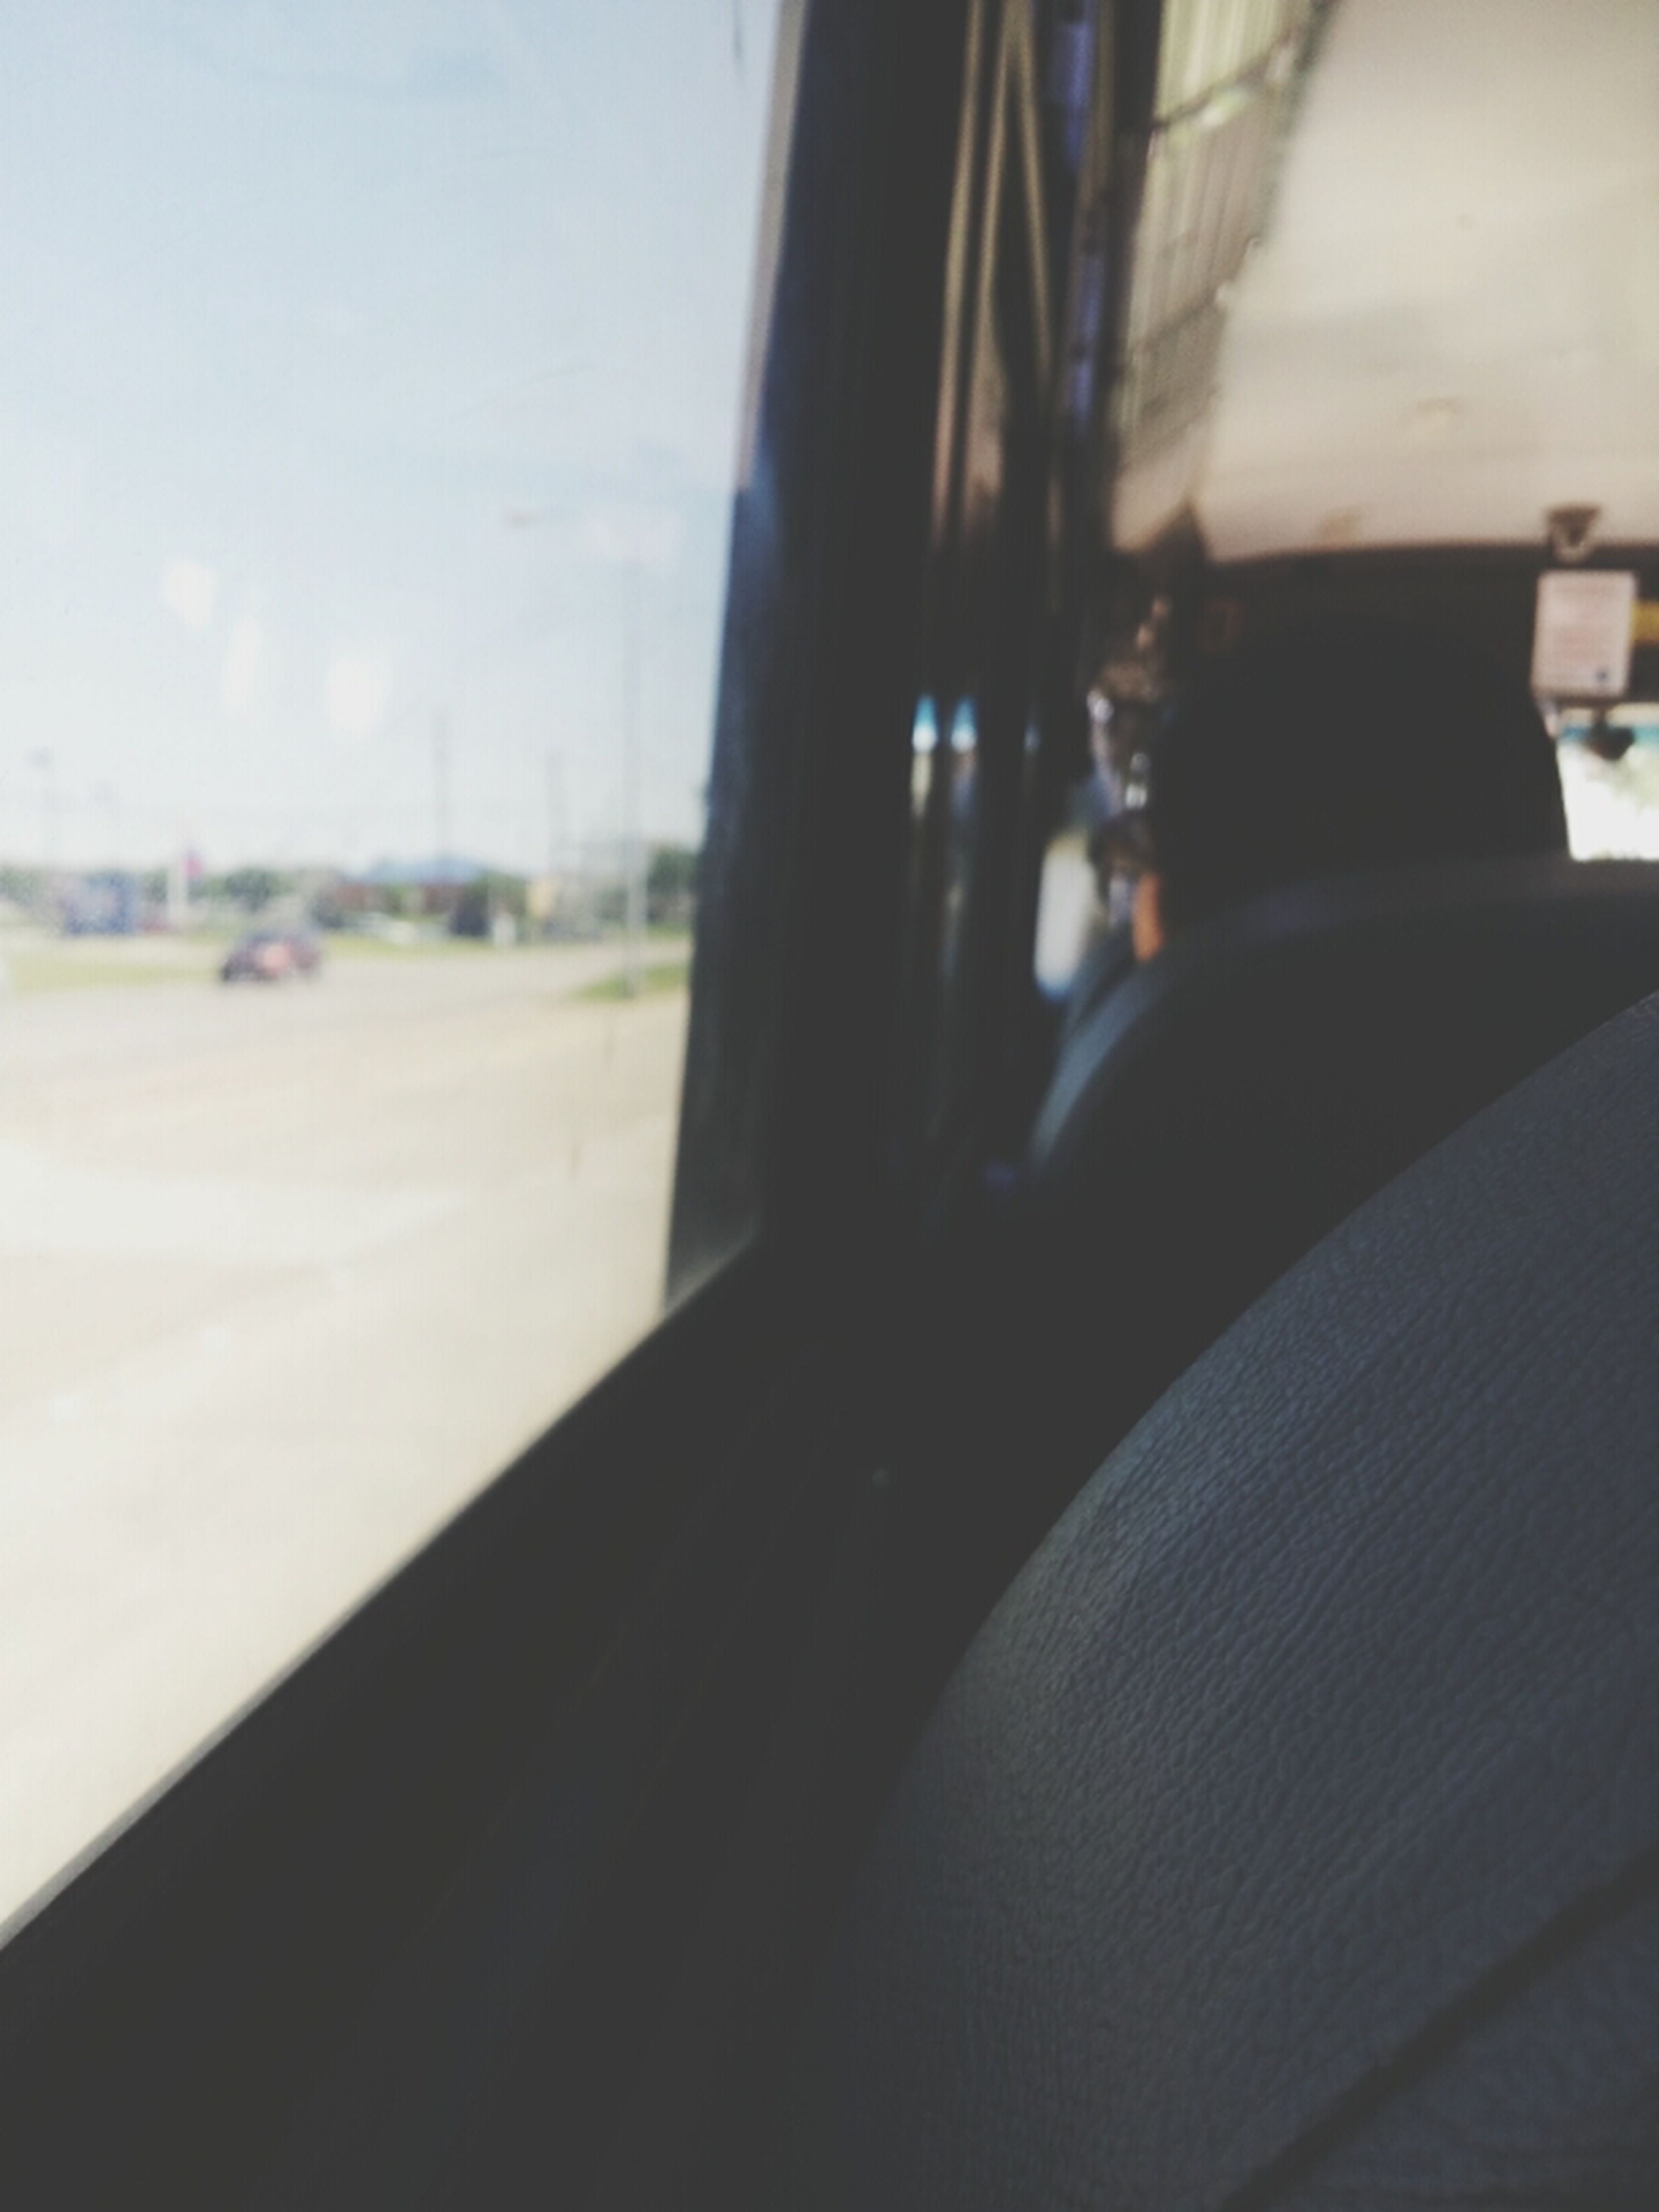 transportation, window, focus on foreground, car, land vehicle, glass - material, mode of transport, transparent, close-up, vehicle interior, part of, sky, day, cropped, road, street, indoors, car interior, selective focus, no people